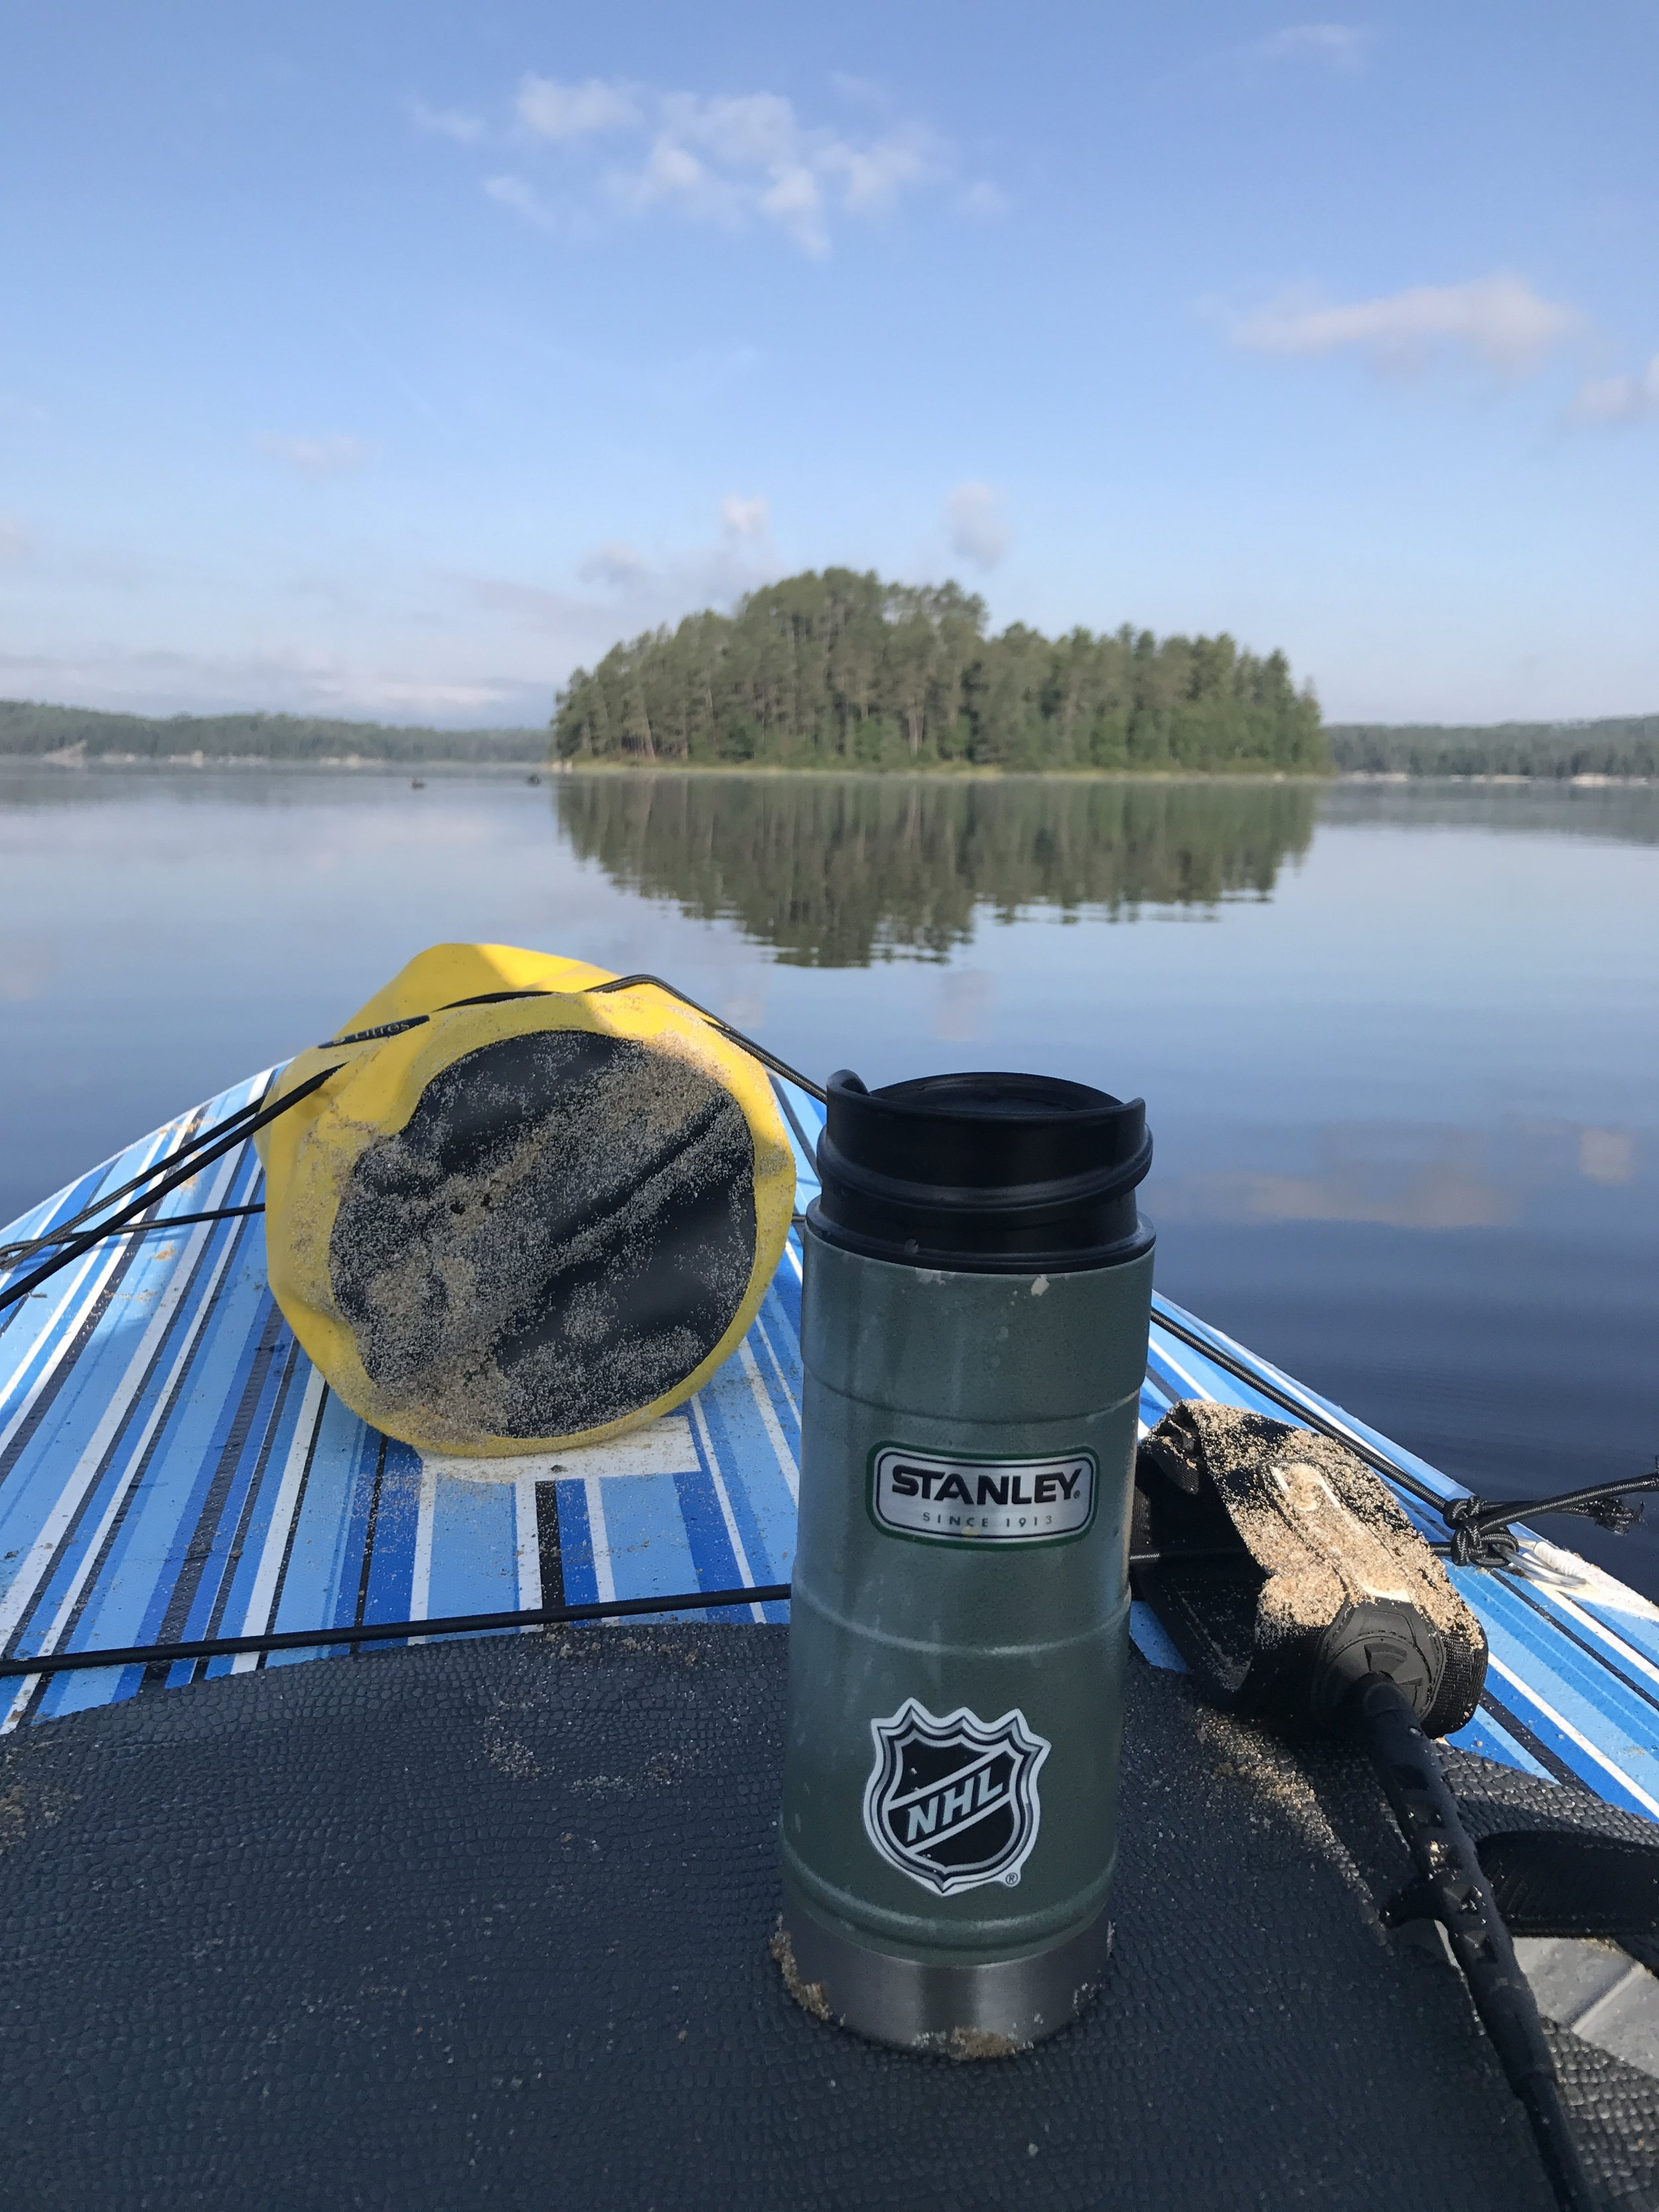 Morning coffee and paddle...ahh, what a great way to start our final day.